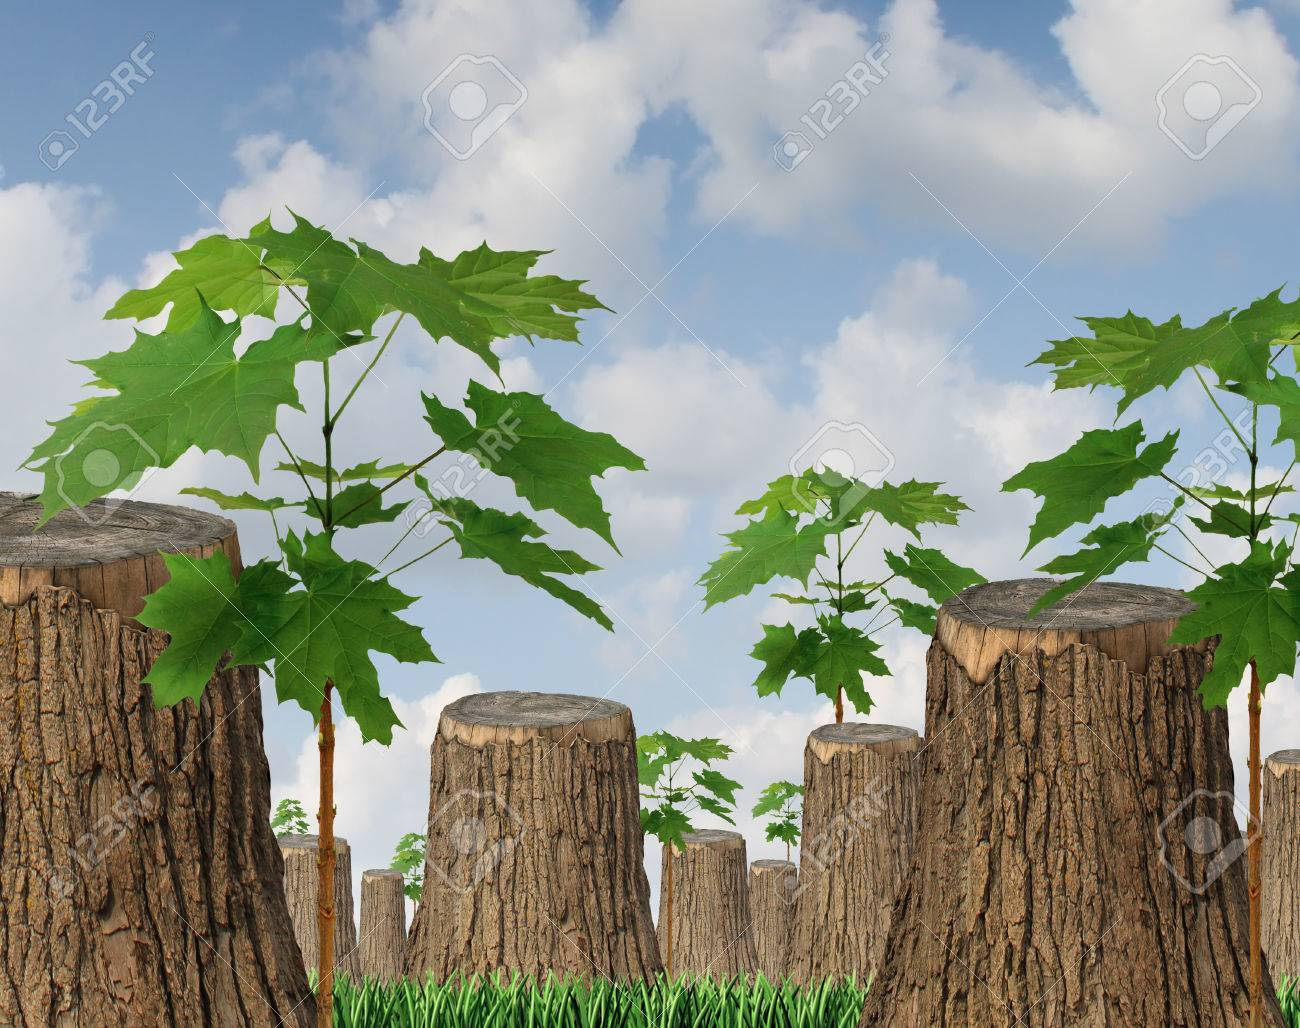 Renewable resources as a concept for sustainable forest management with a group of cut down old trees and new green saplings growing between the wooden stumps as a symbol of hope for the future of the environment and conservation - 25248626